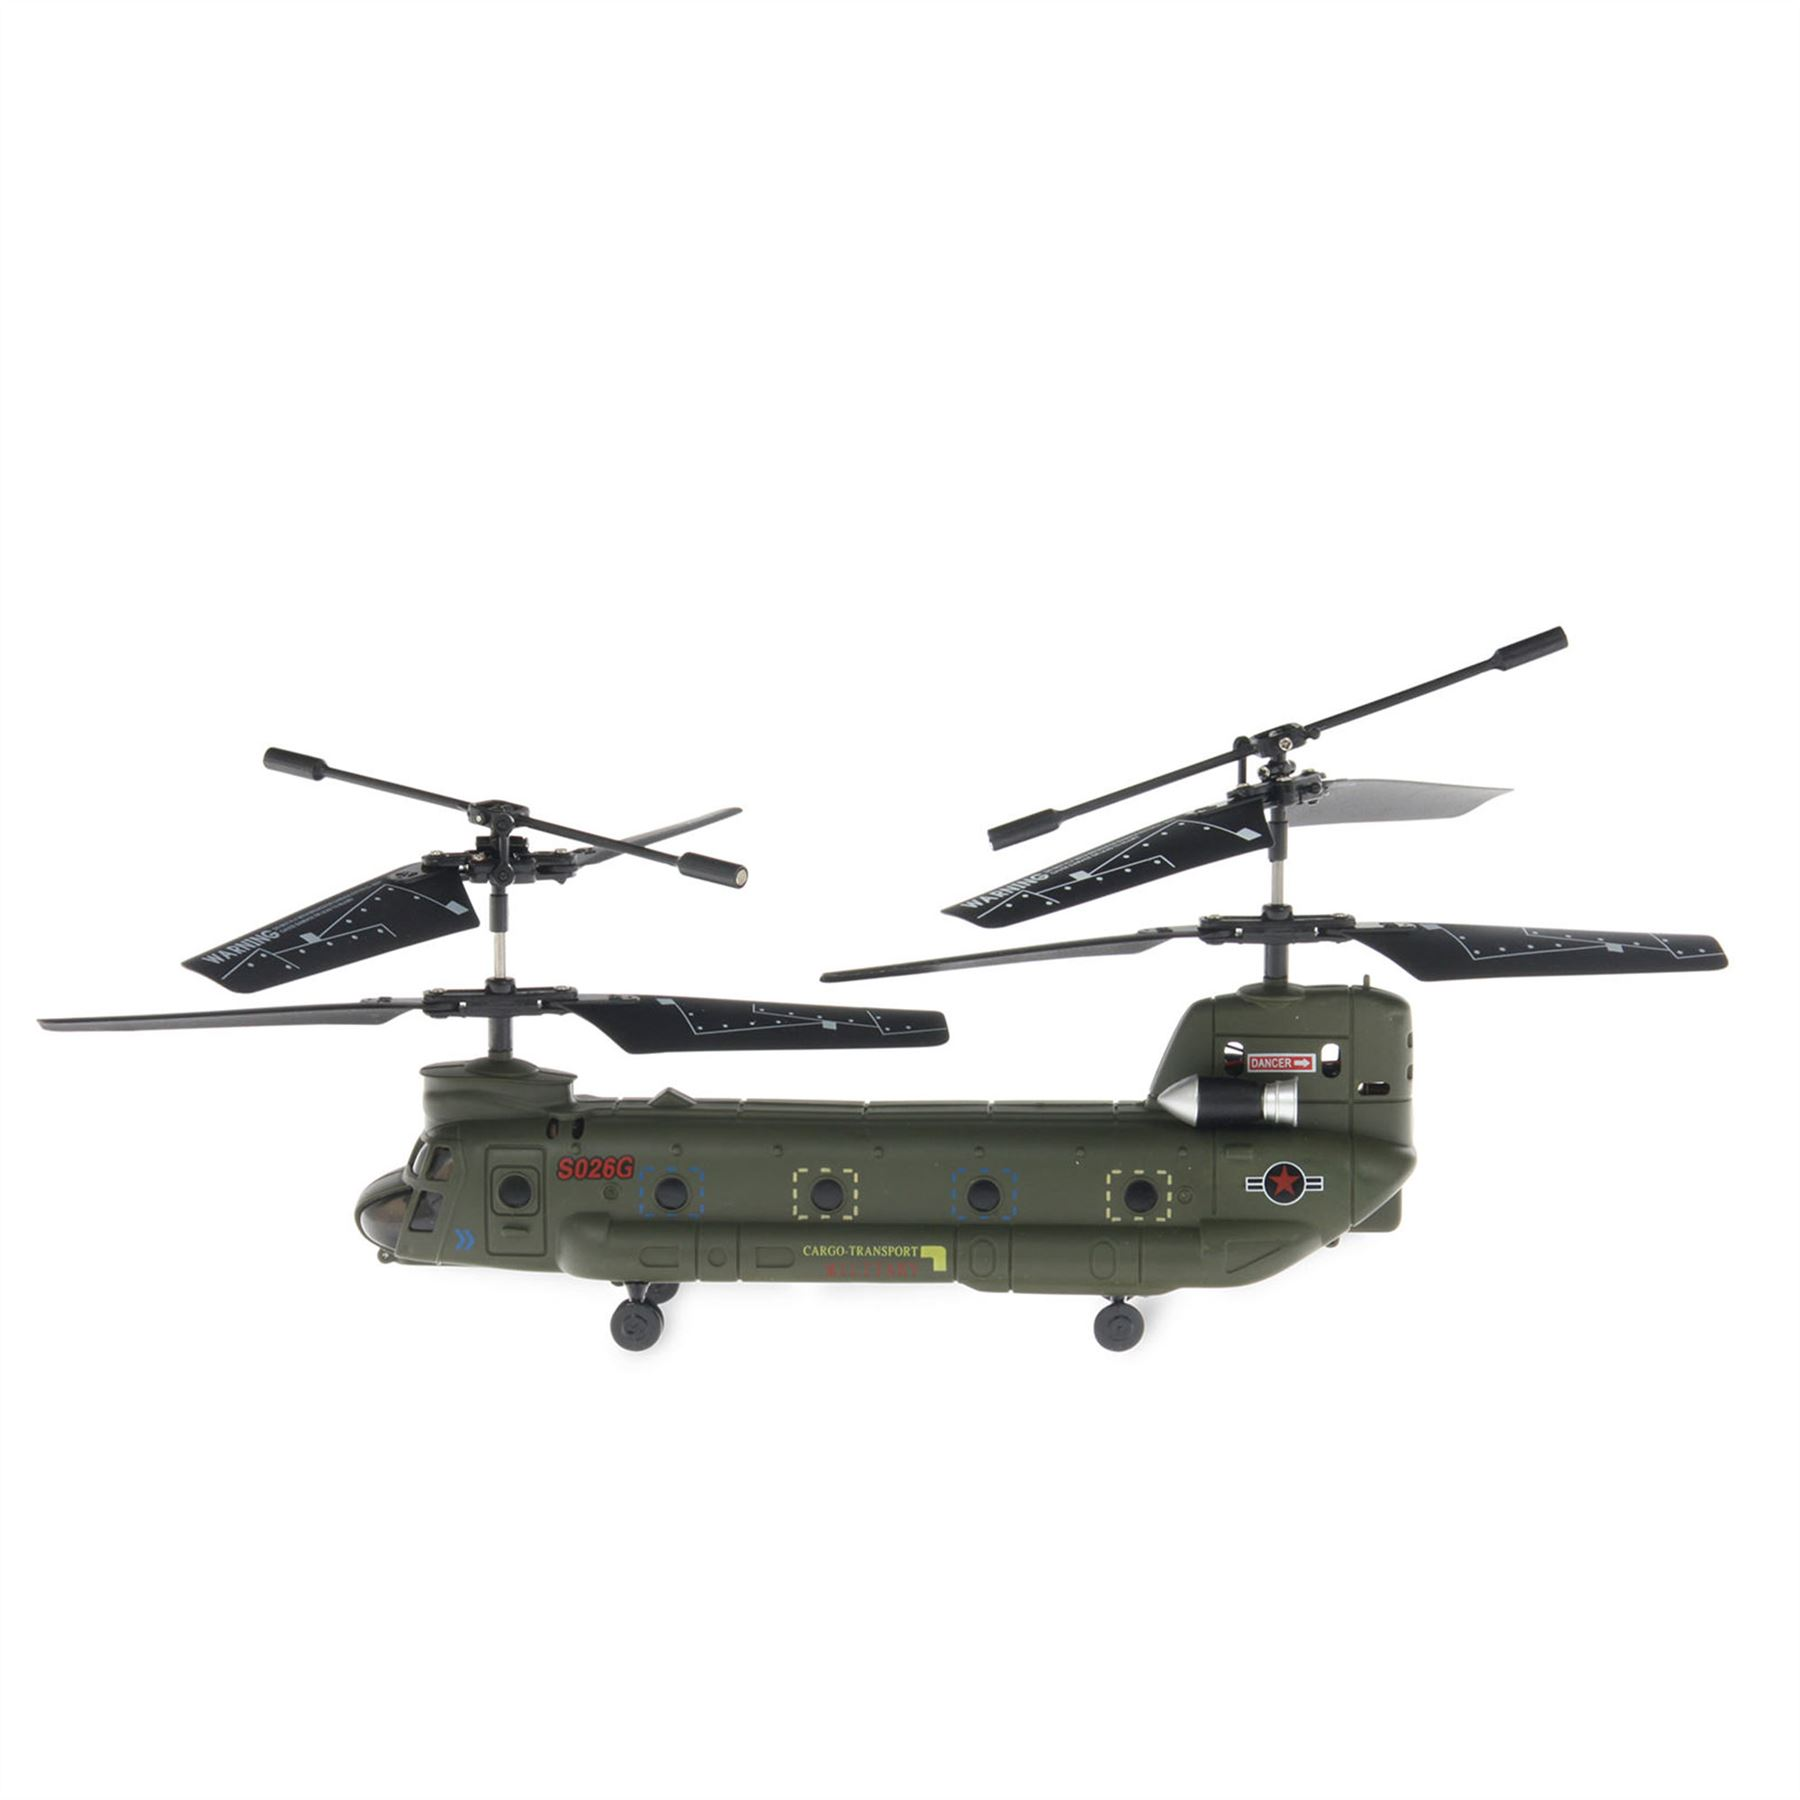 Craft Model Rc Helicopter